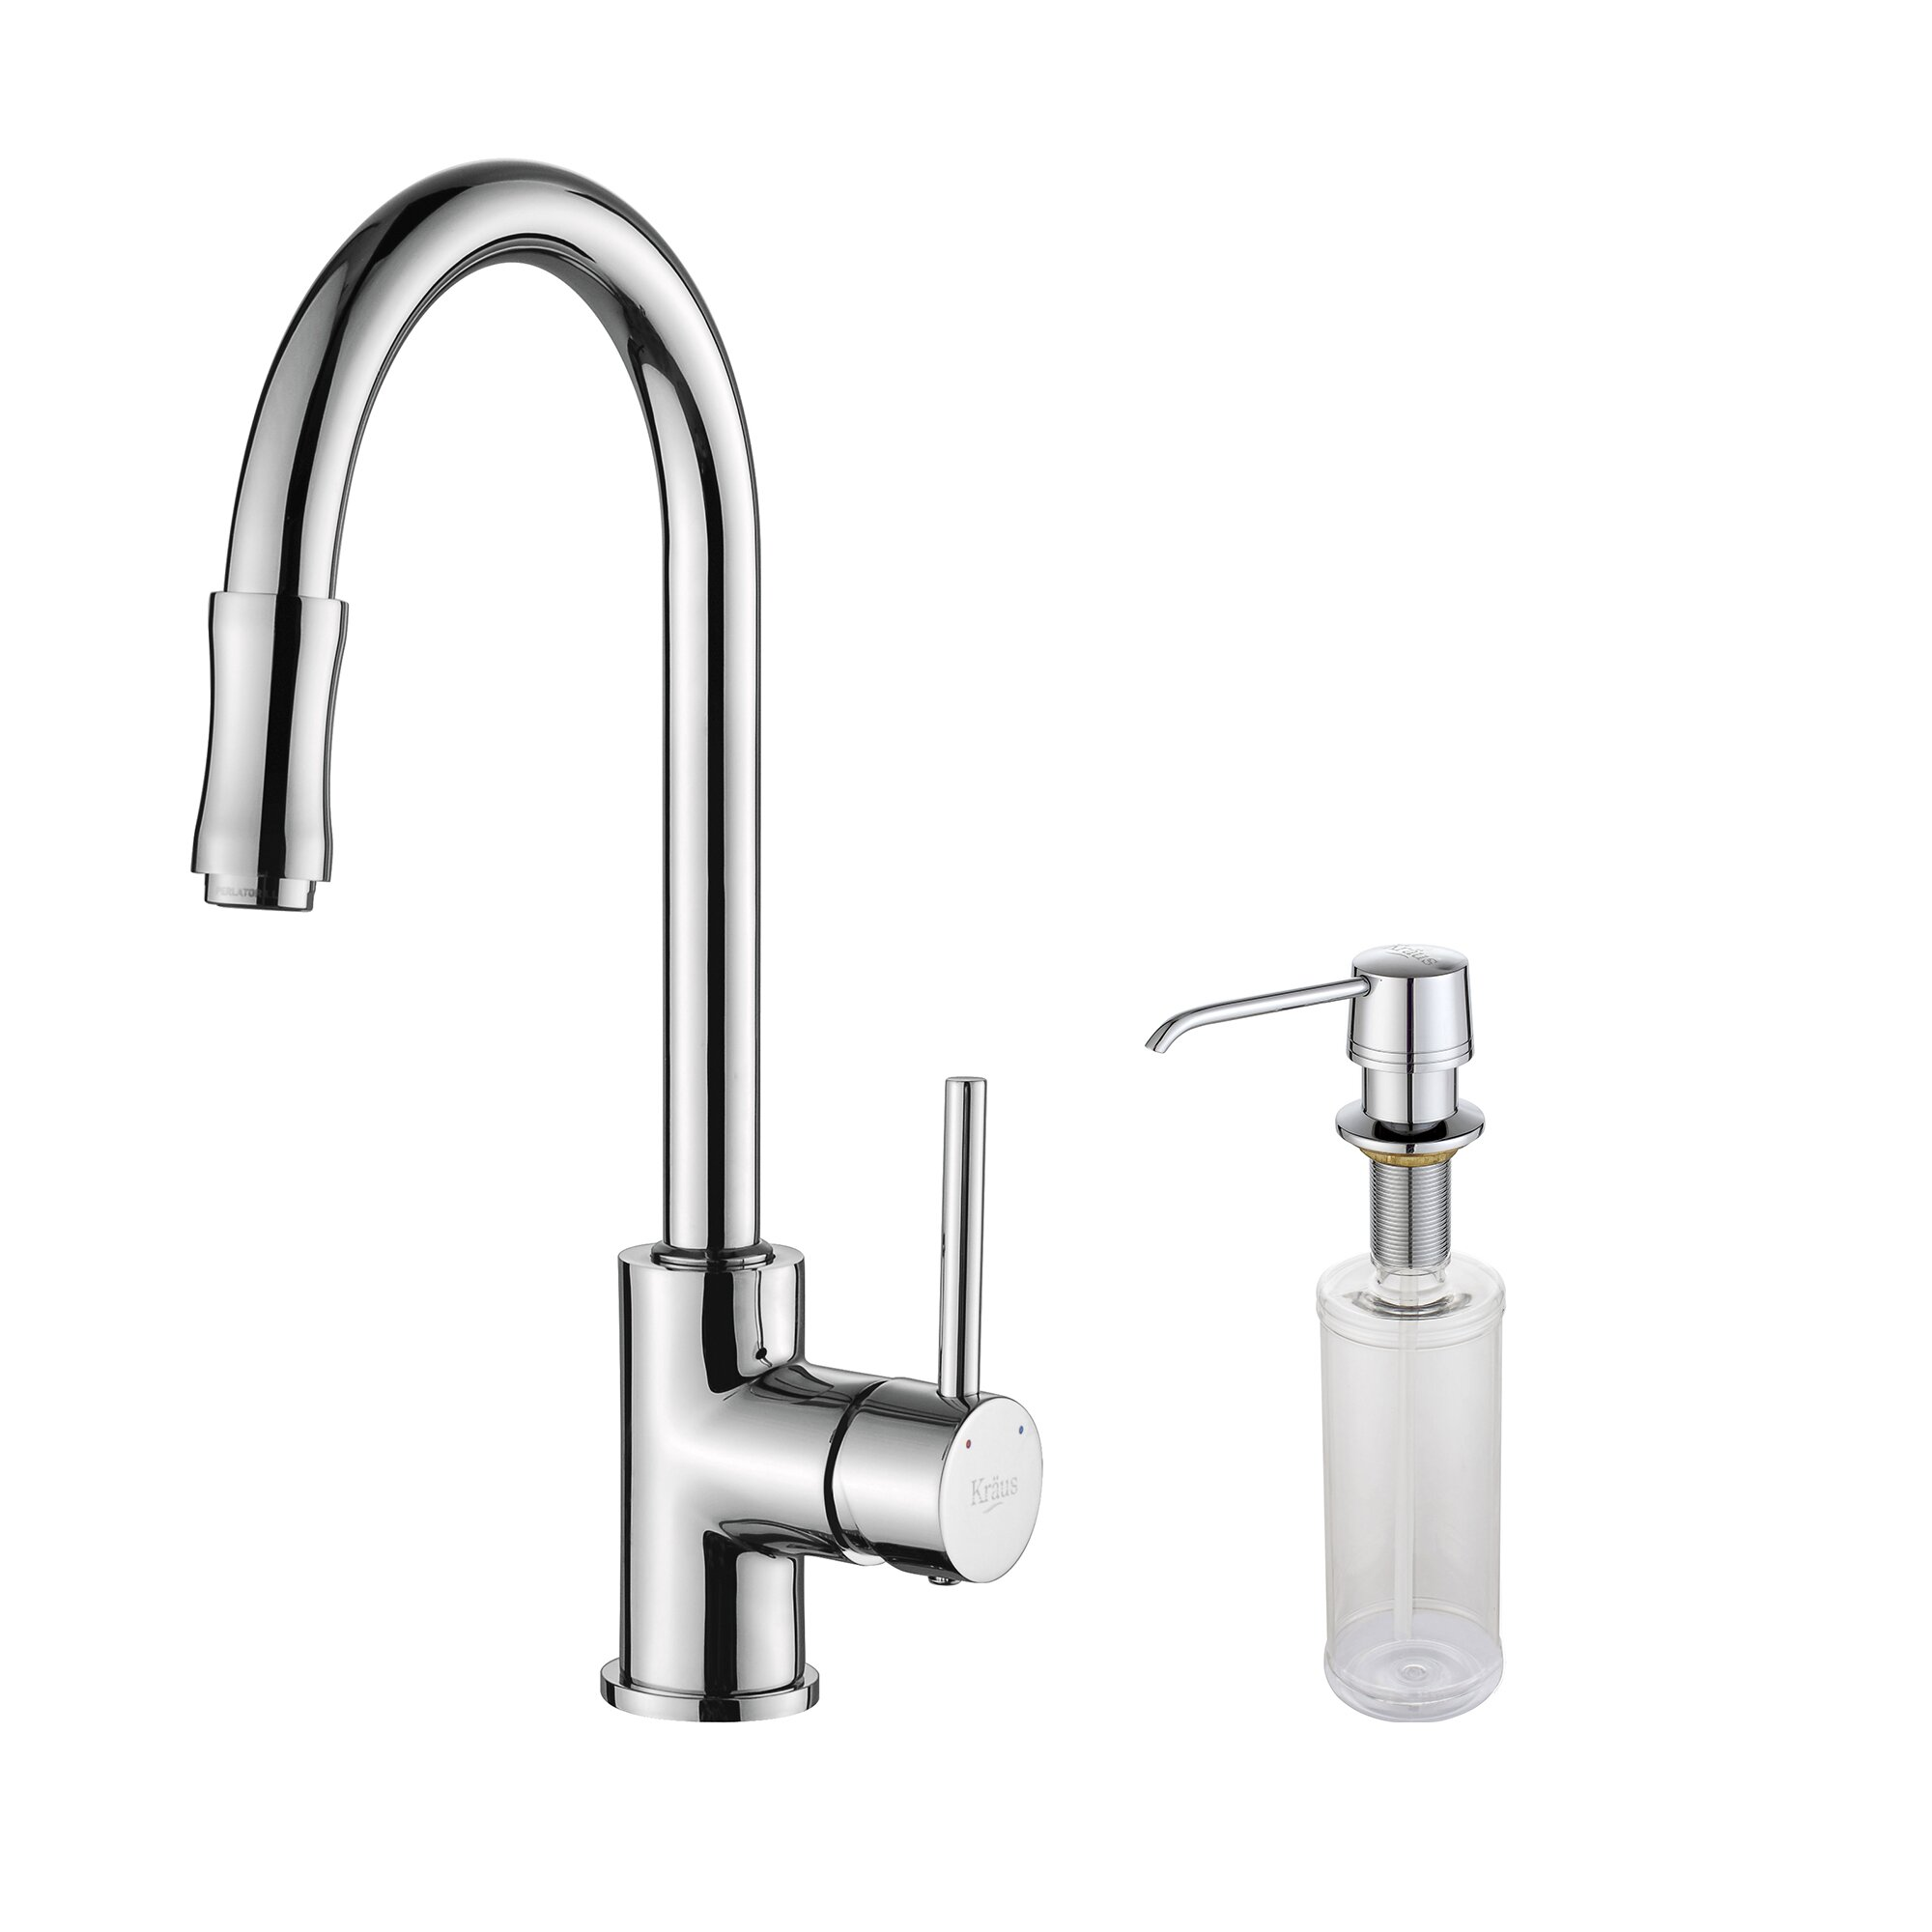 single handle pull down kitchen faucet set with spray and